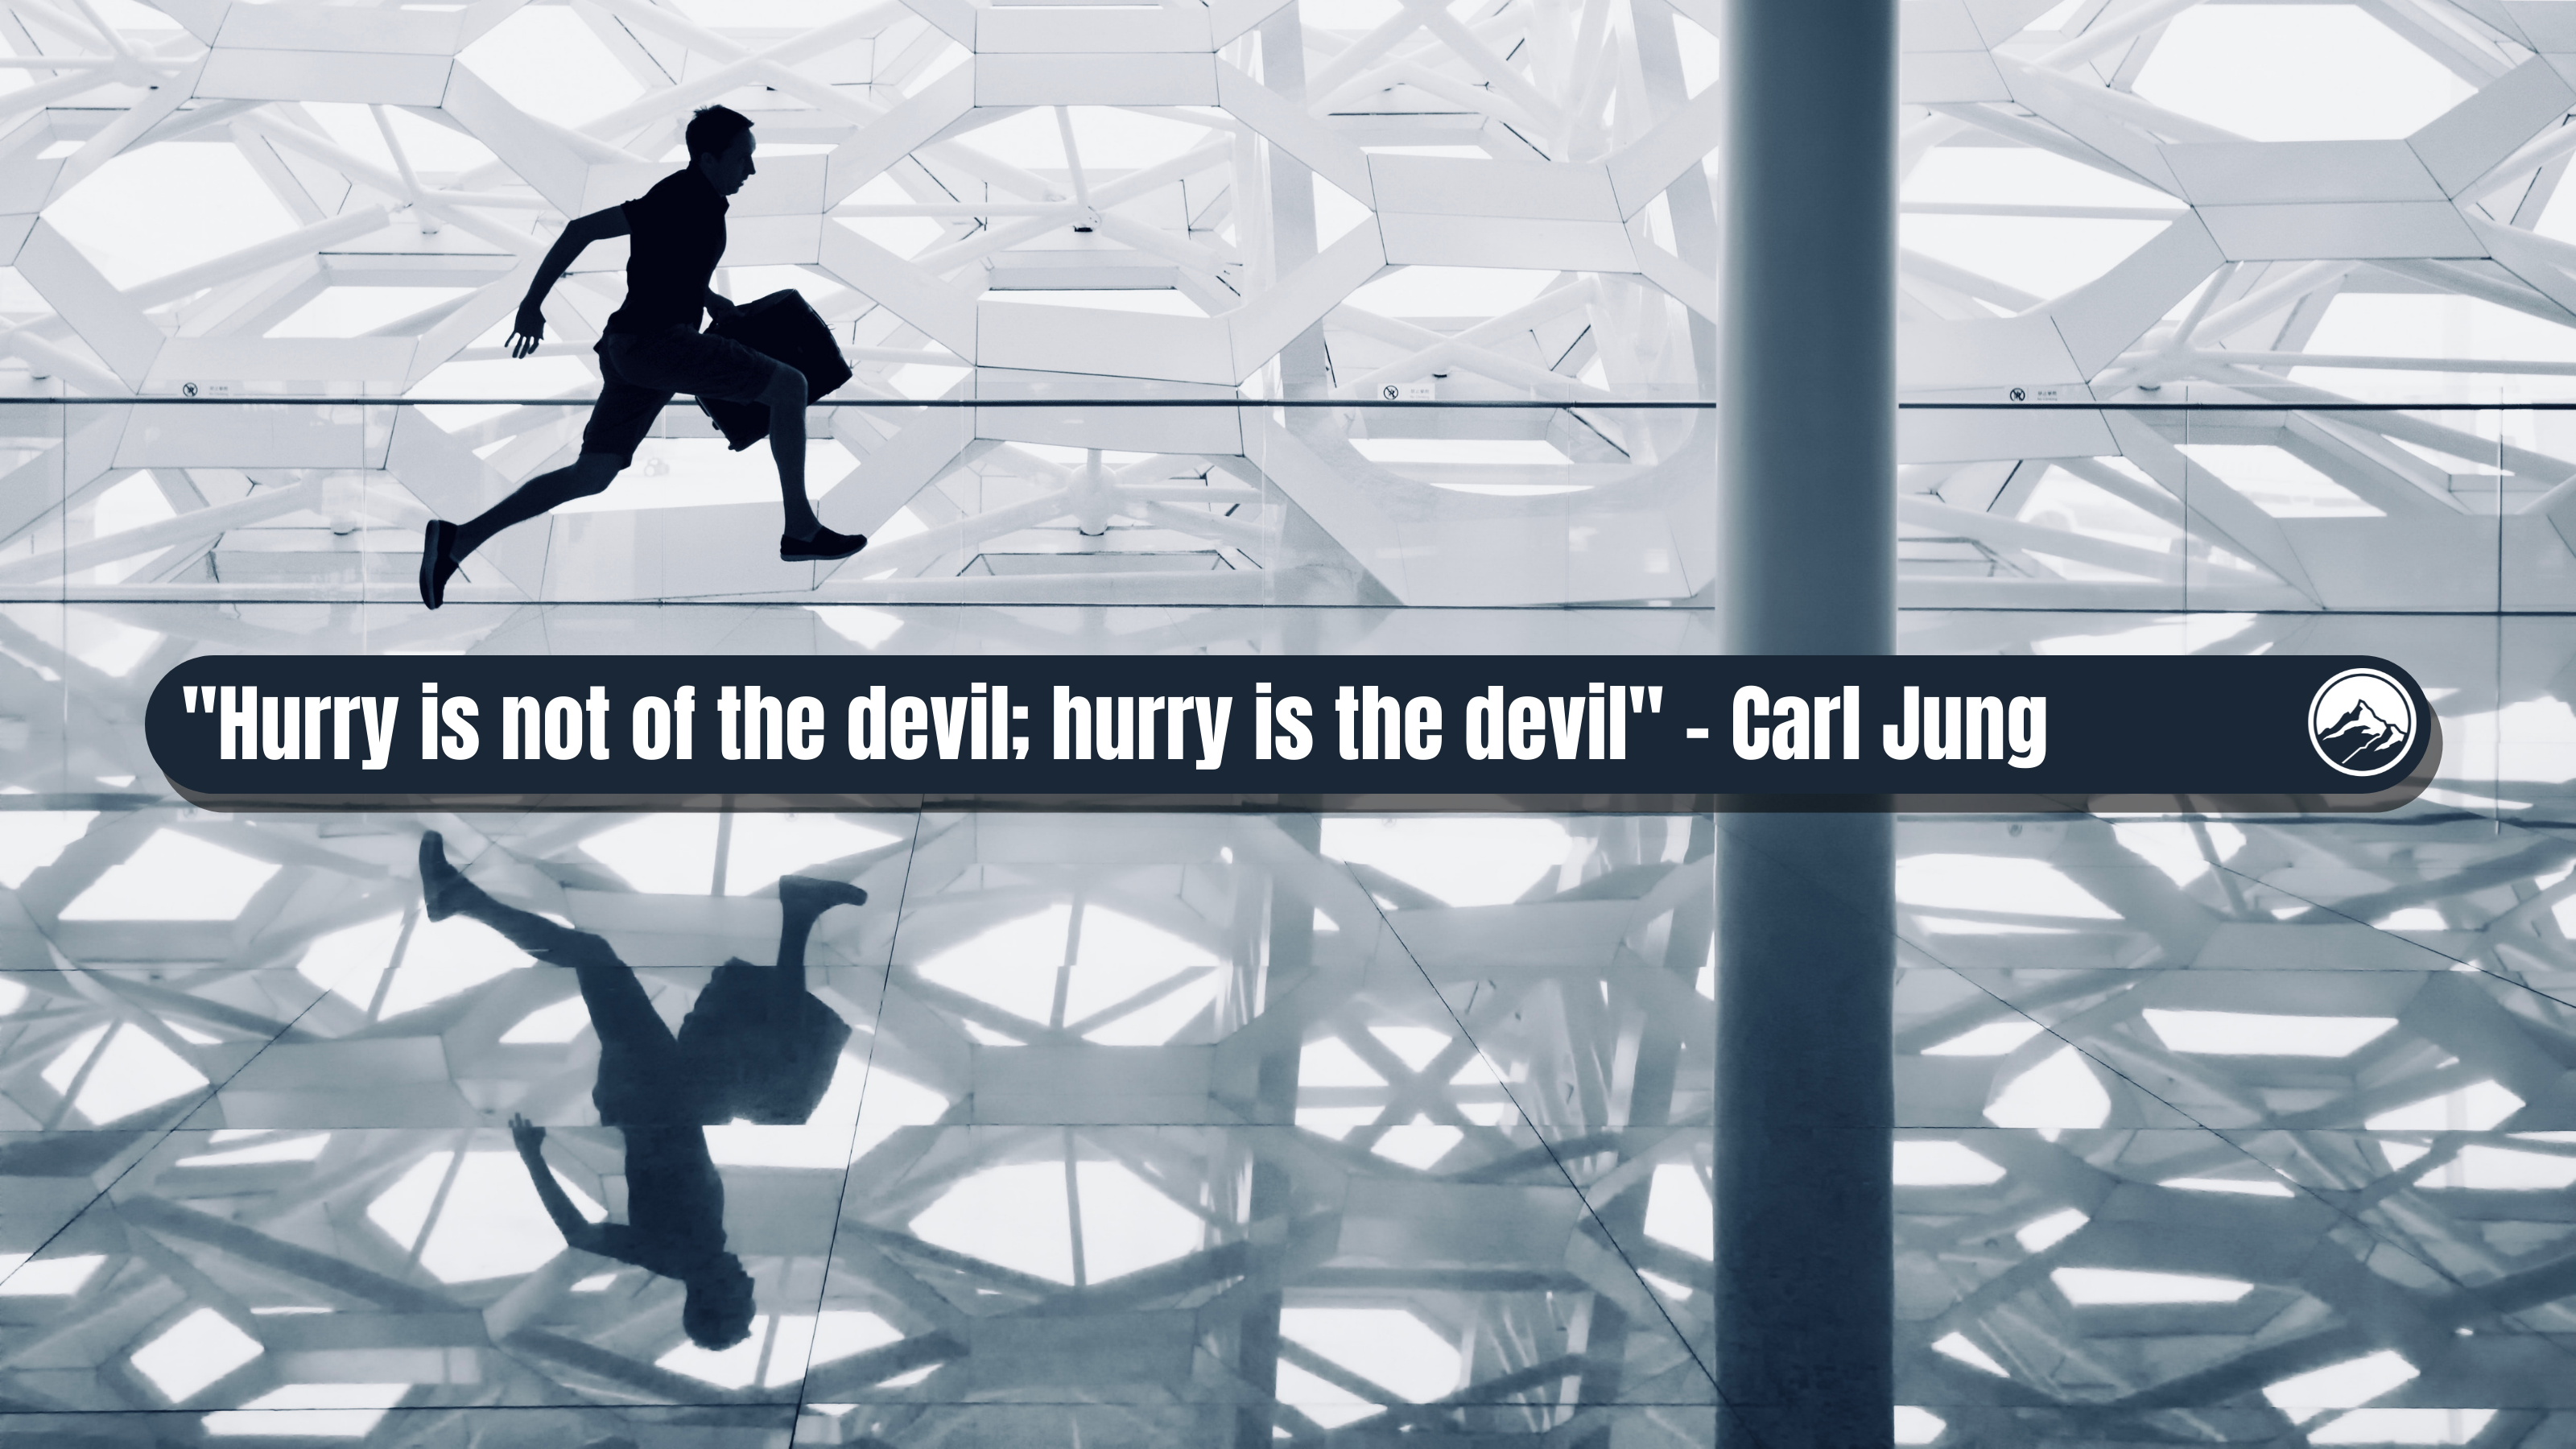 Hurry is not of the devil; hurry is the devil - Carl Jung